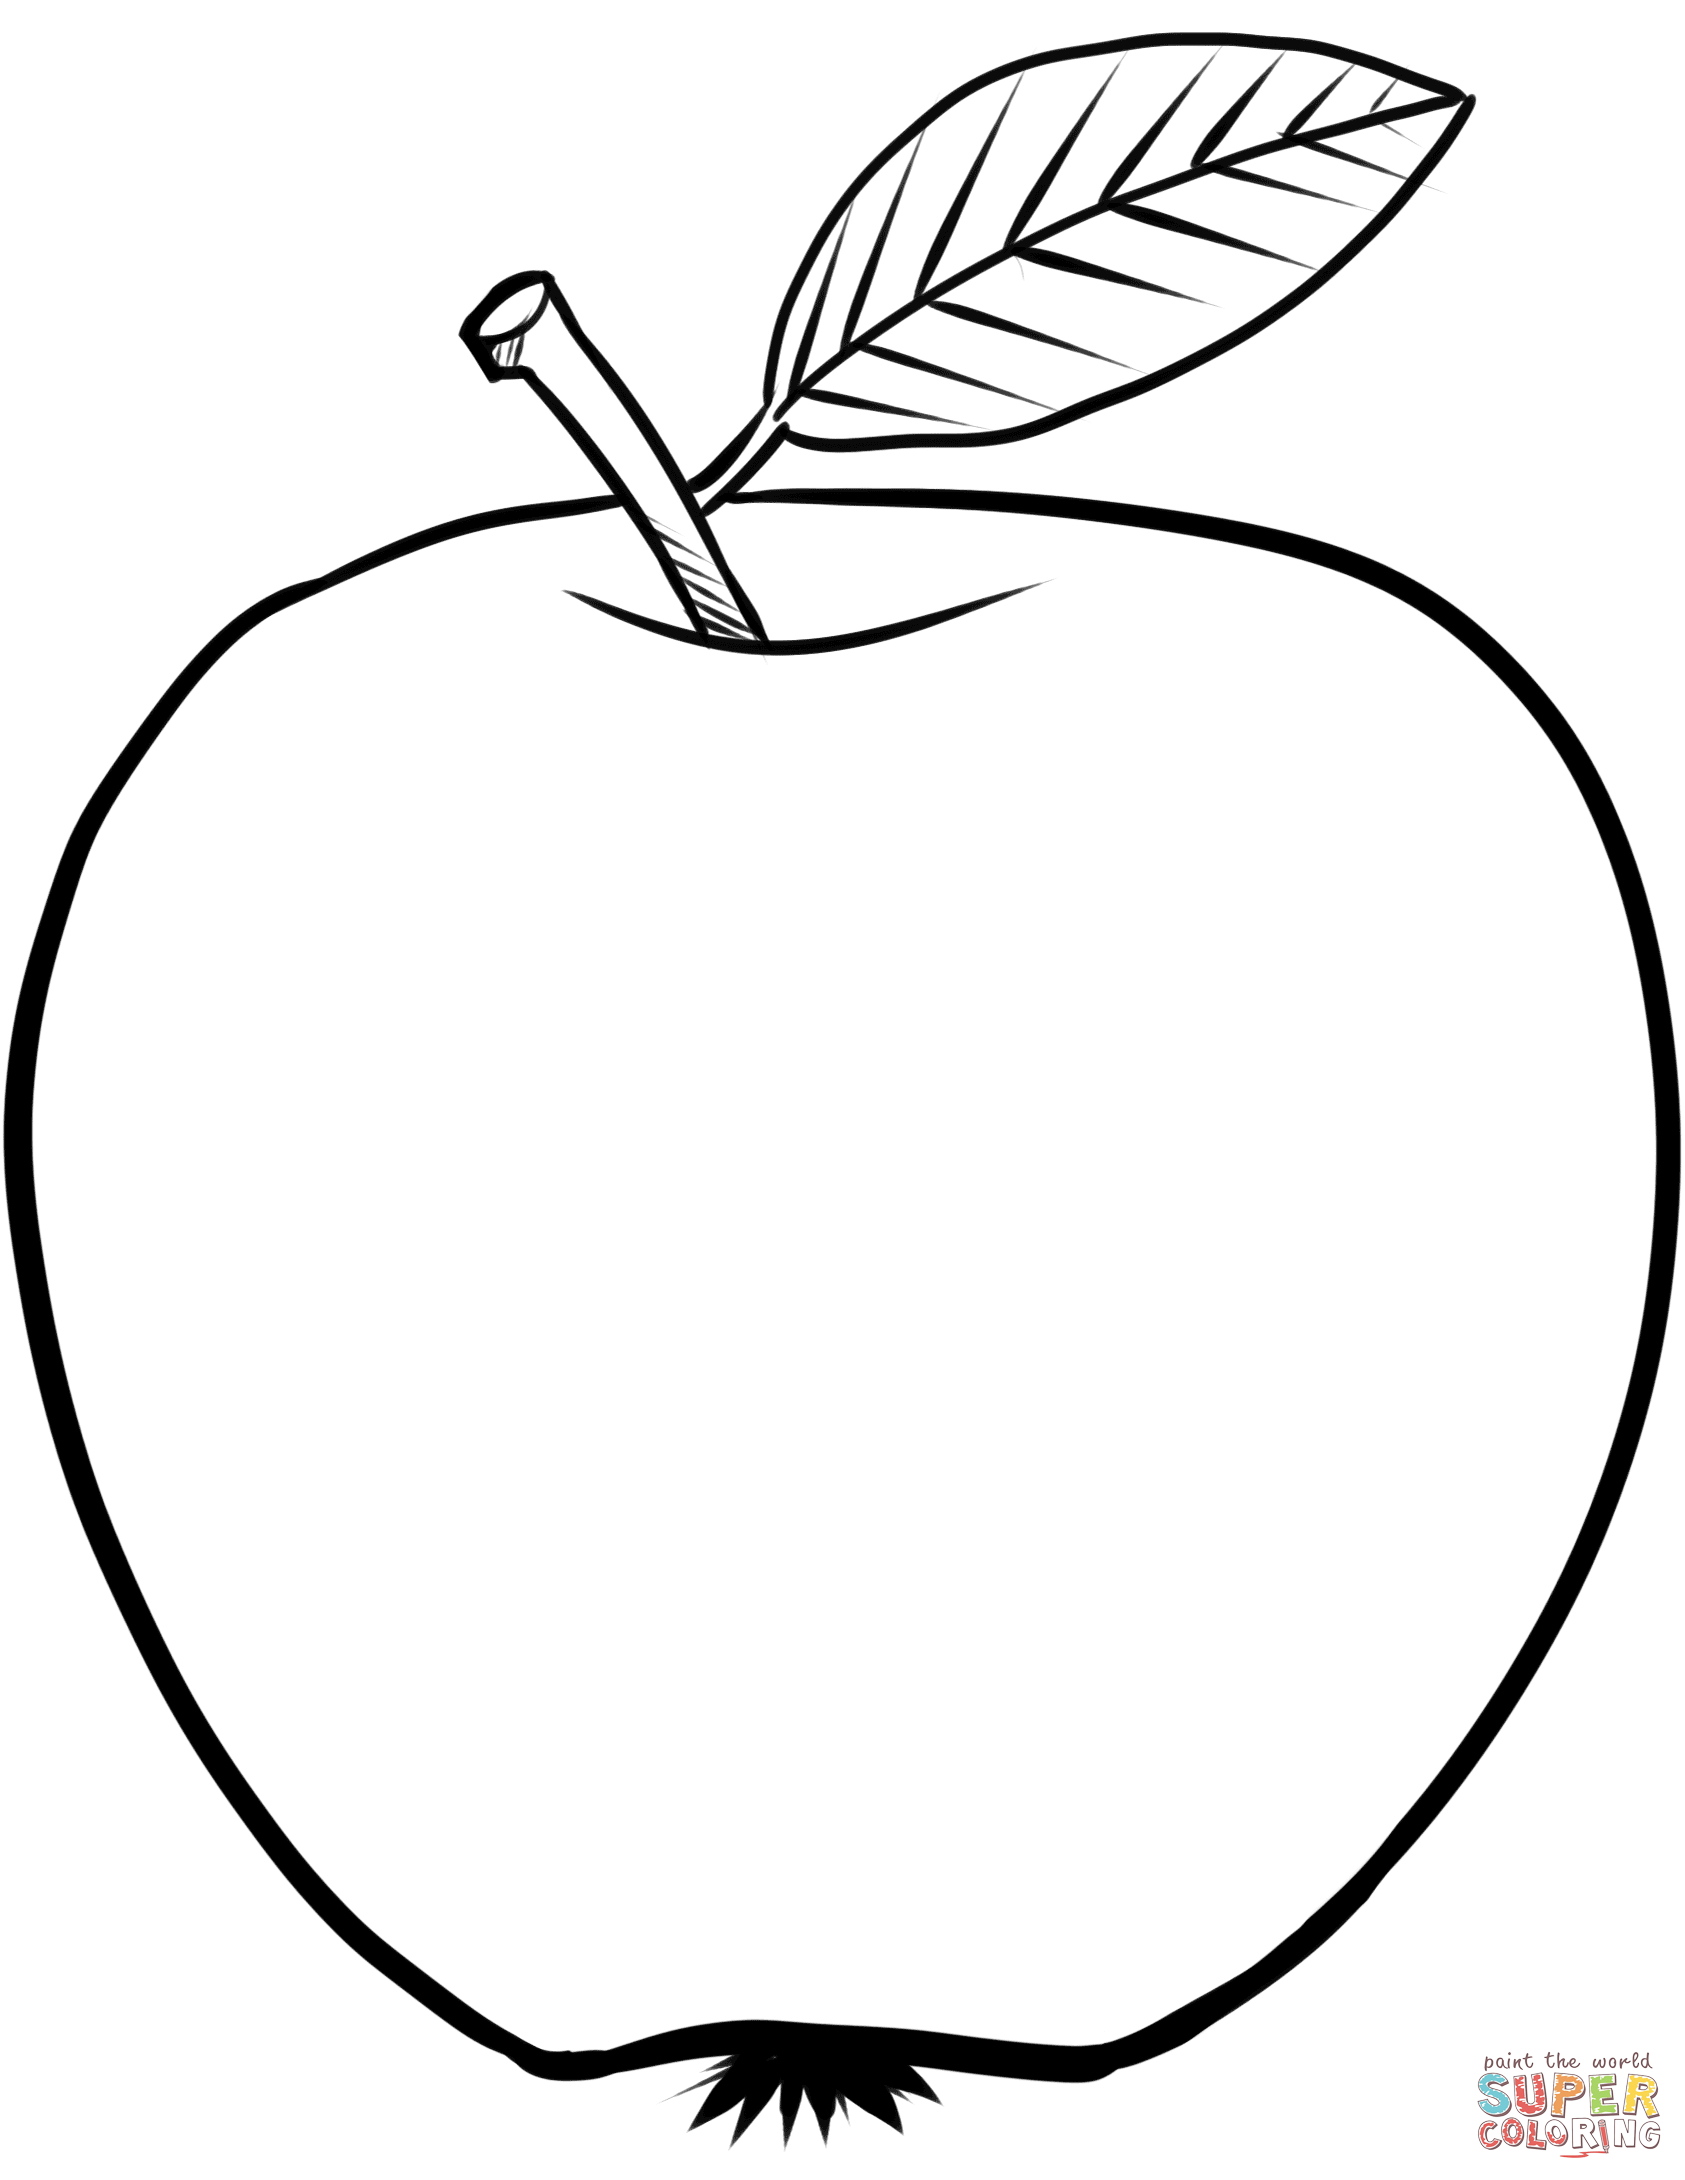 1685x2180 Apple Coloring Page Free Printable Coloring Pages